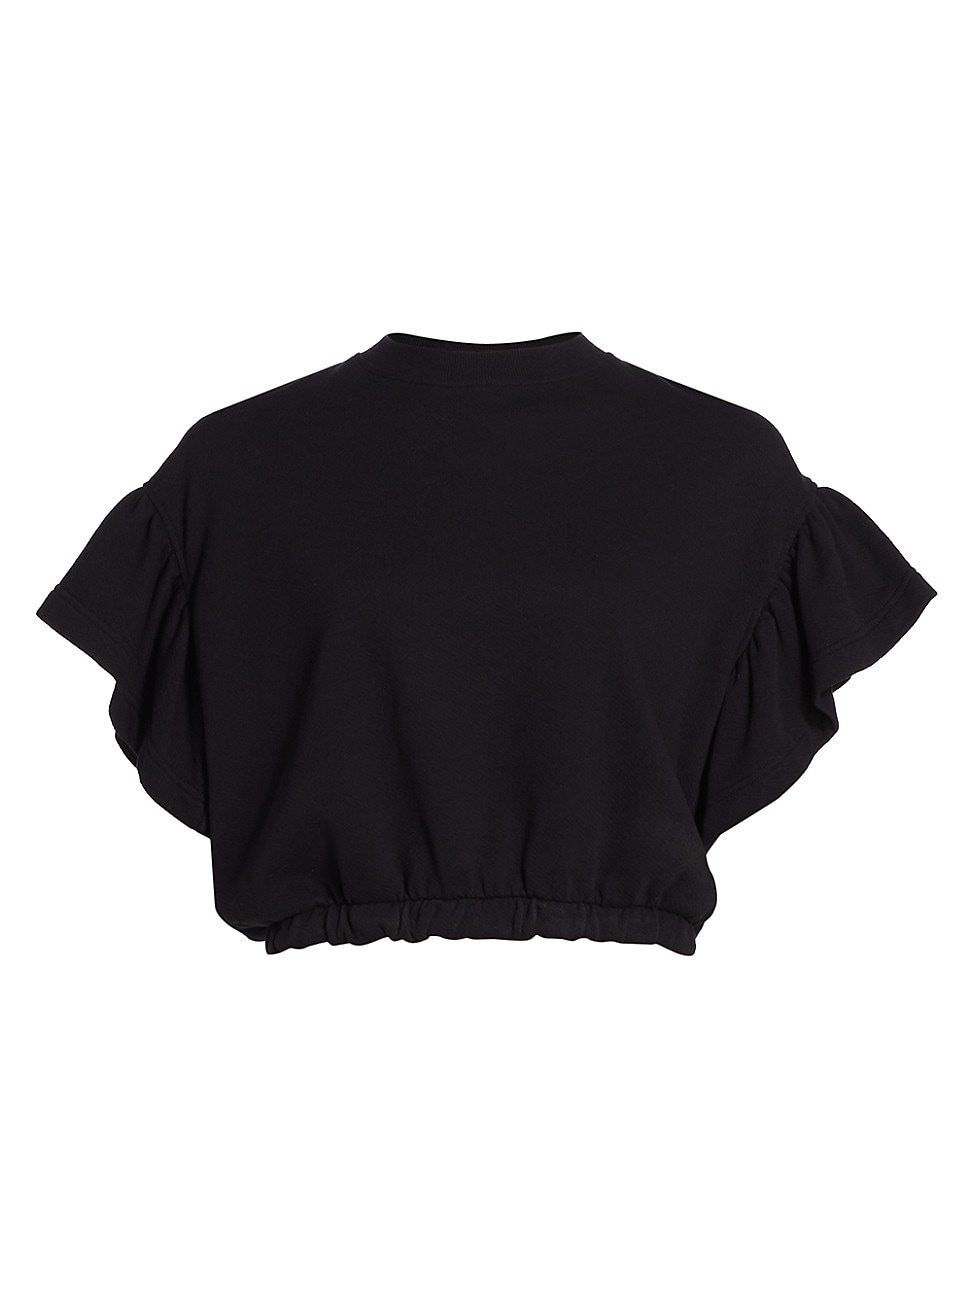 Alice And Olivia WOMEN'S JOLINE RUFFLE-SLEEVE CROP SWEATSHIRT